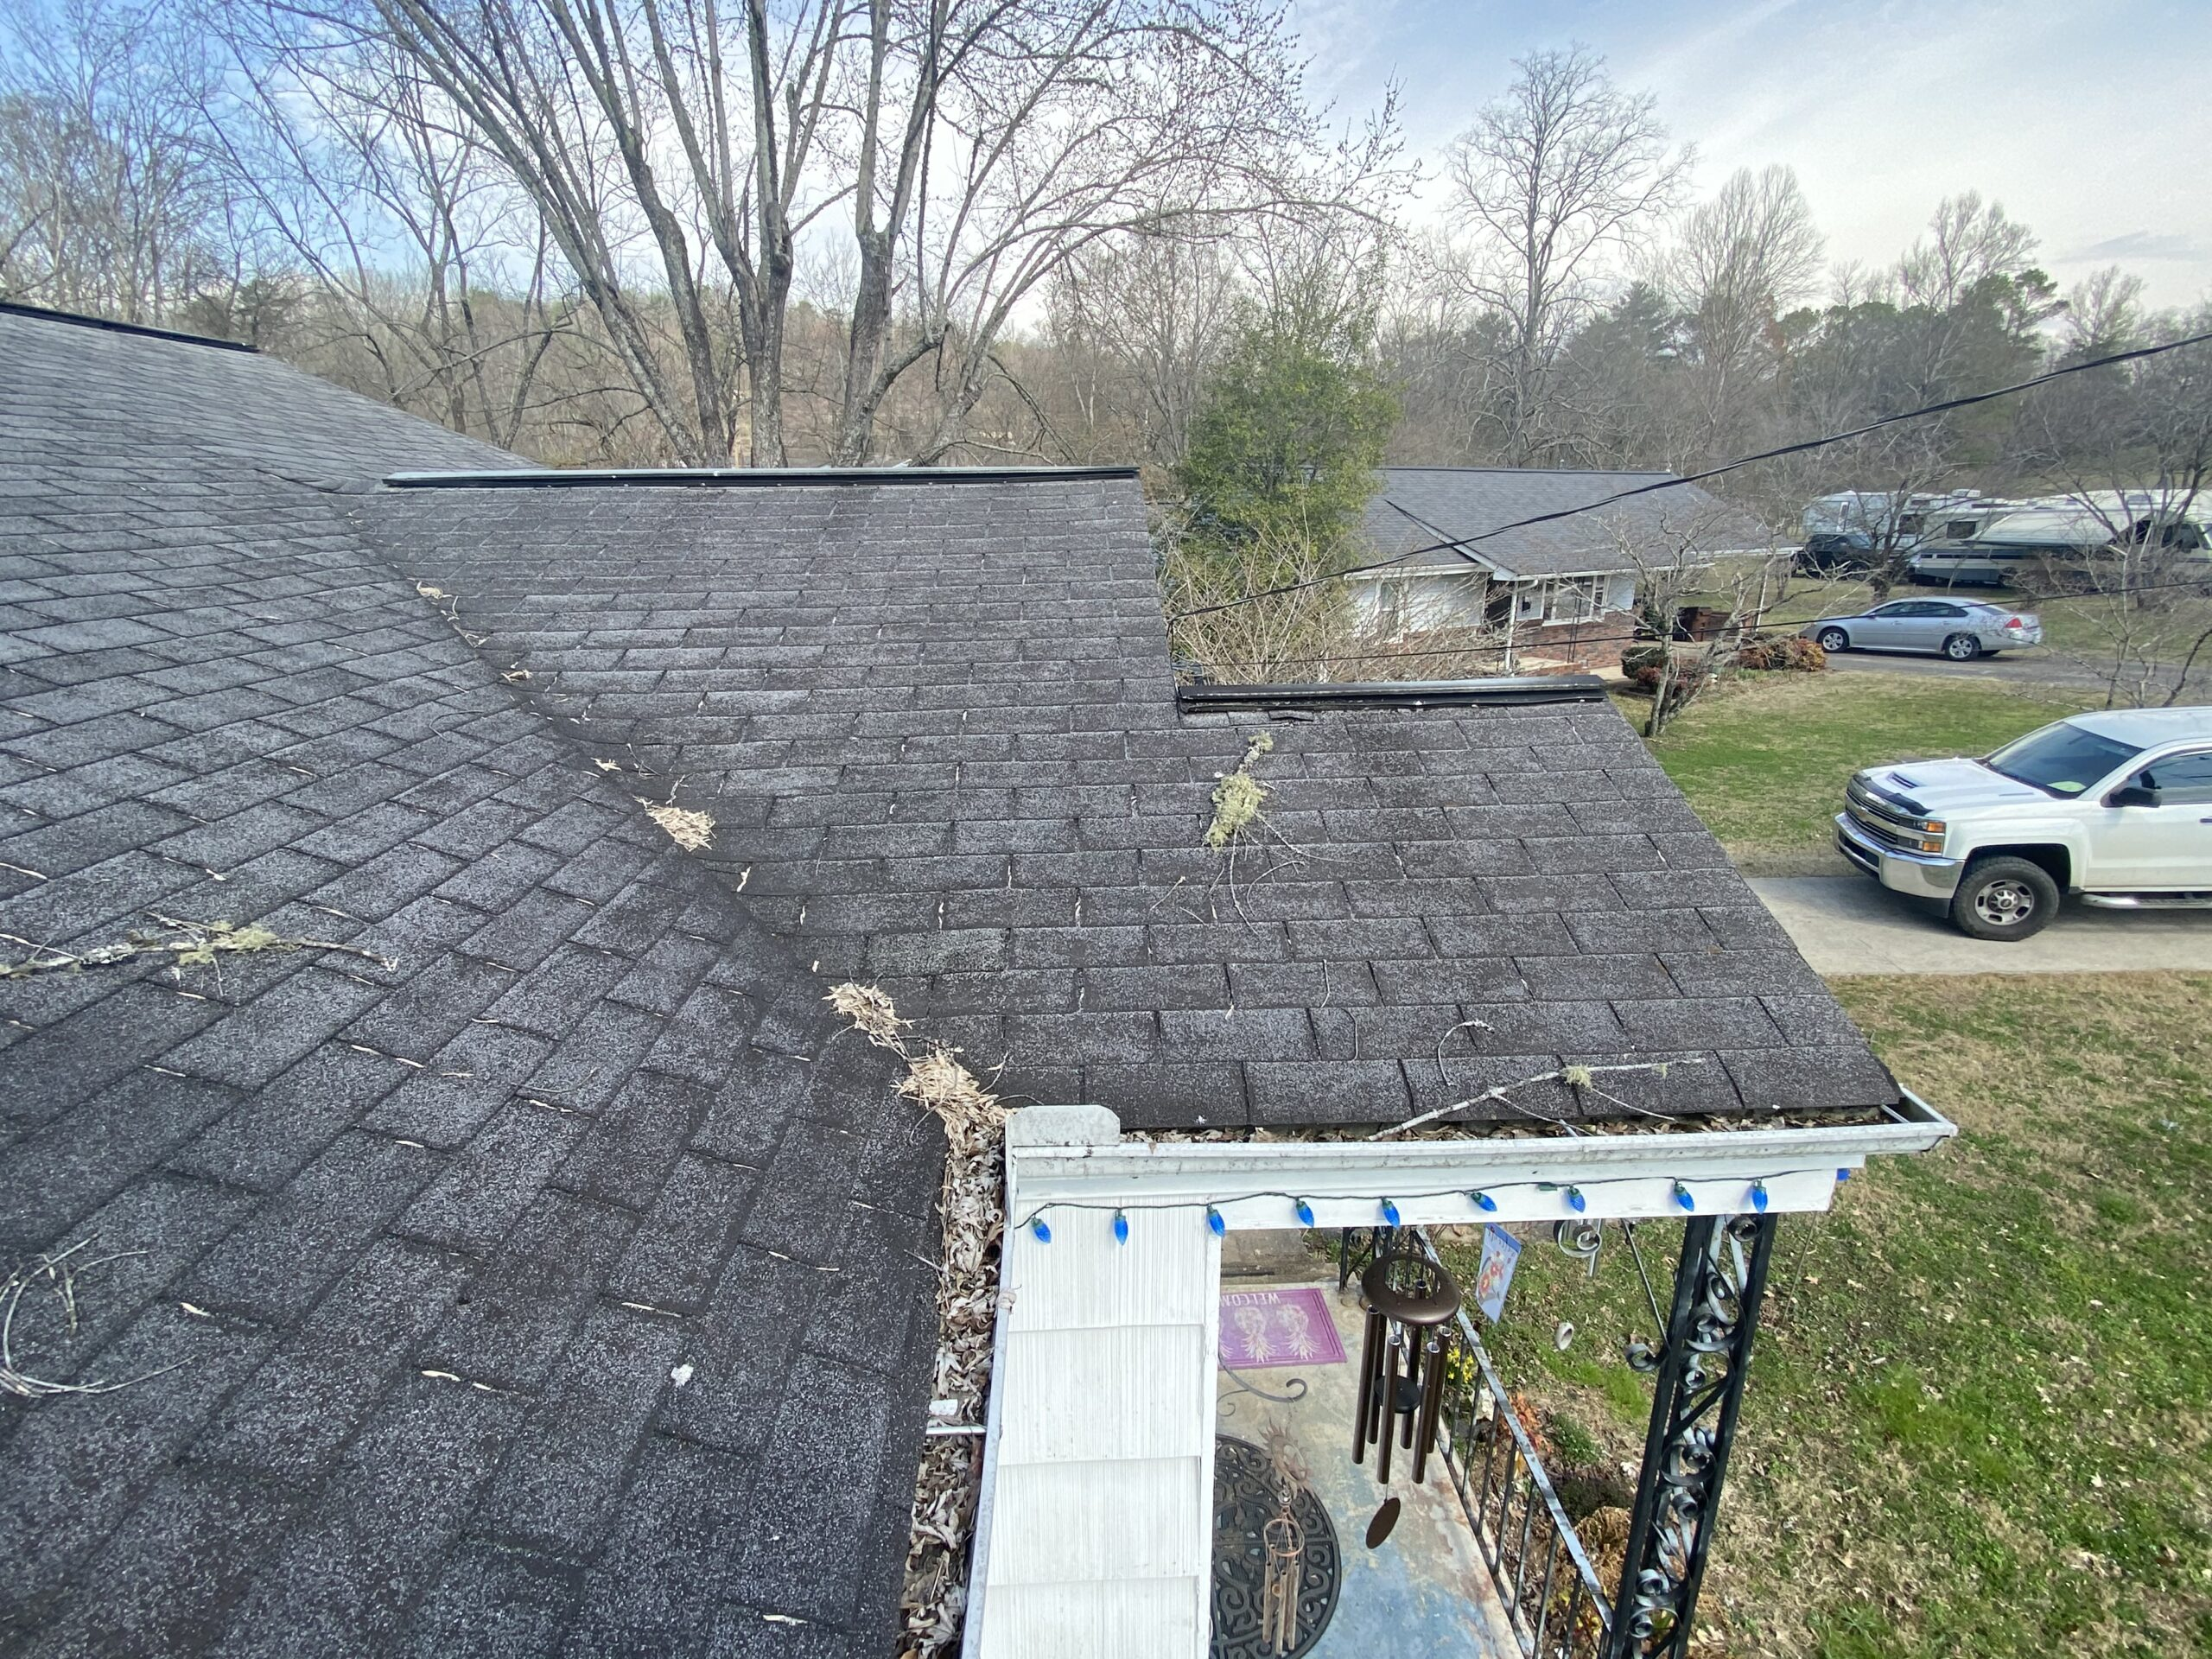 This is a picture of a black roof with gutters full of leaves.